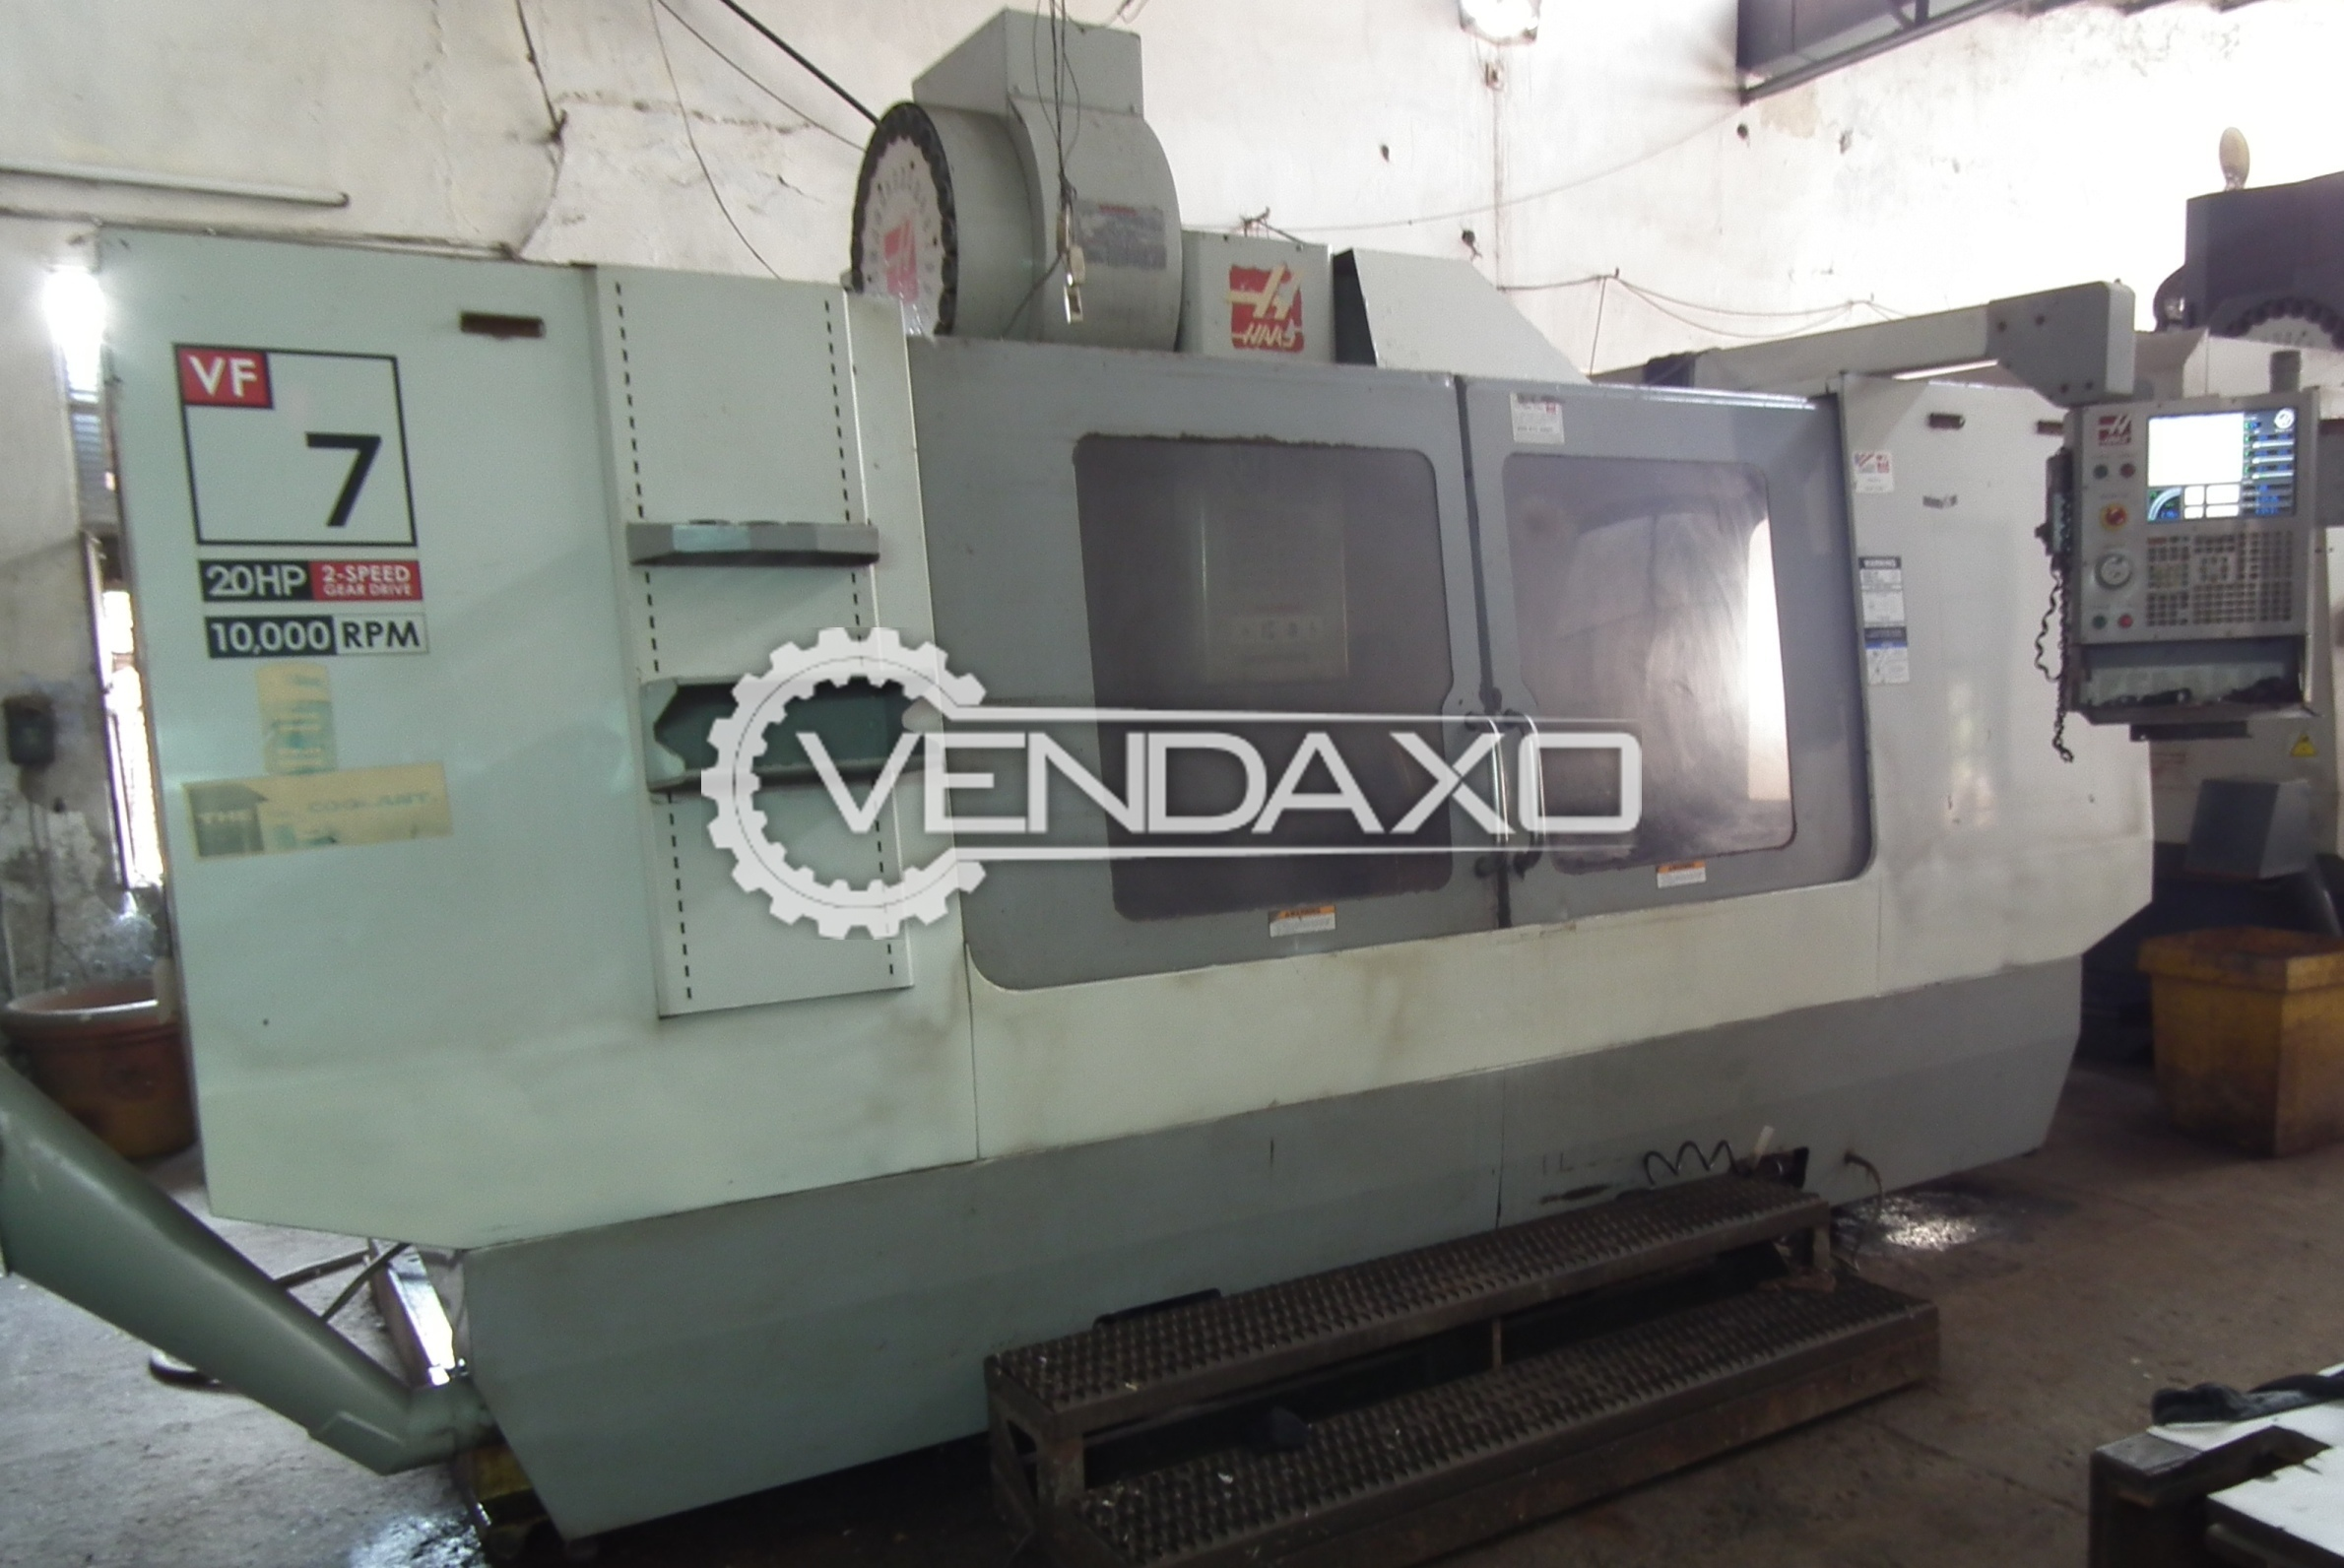 HAAS CNC Vertical Milling Center - 2134 x 711 mm With Tool Changer And Accessories